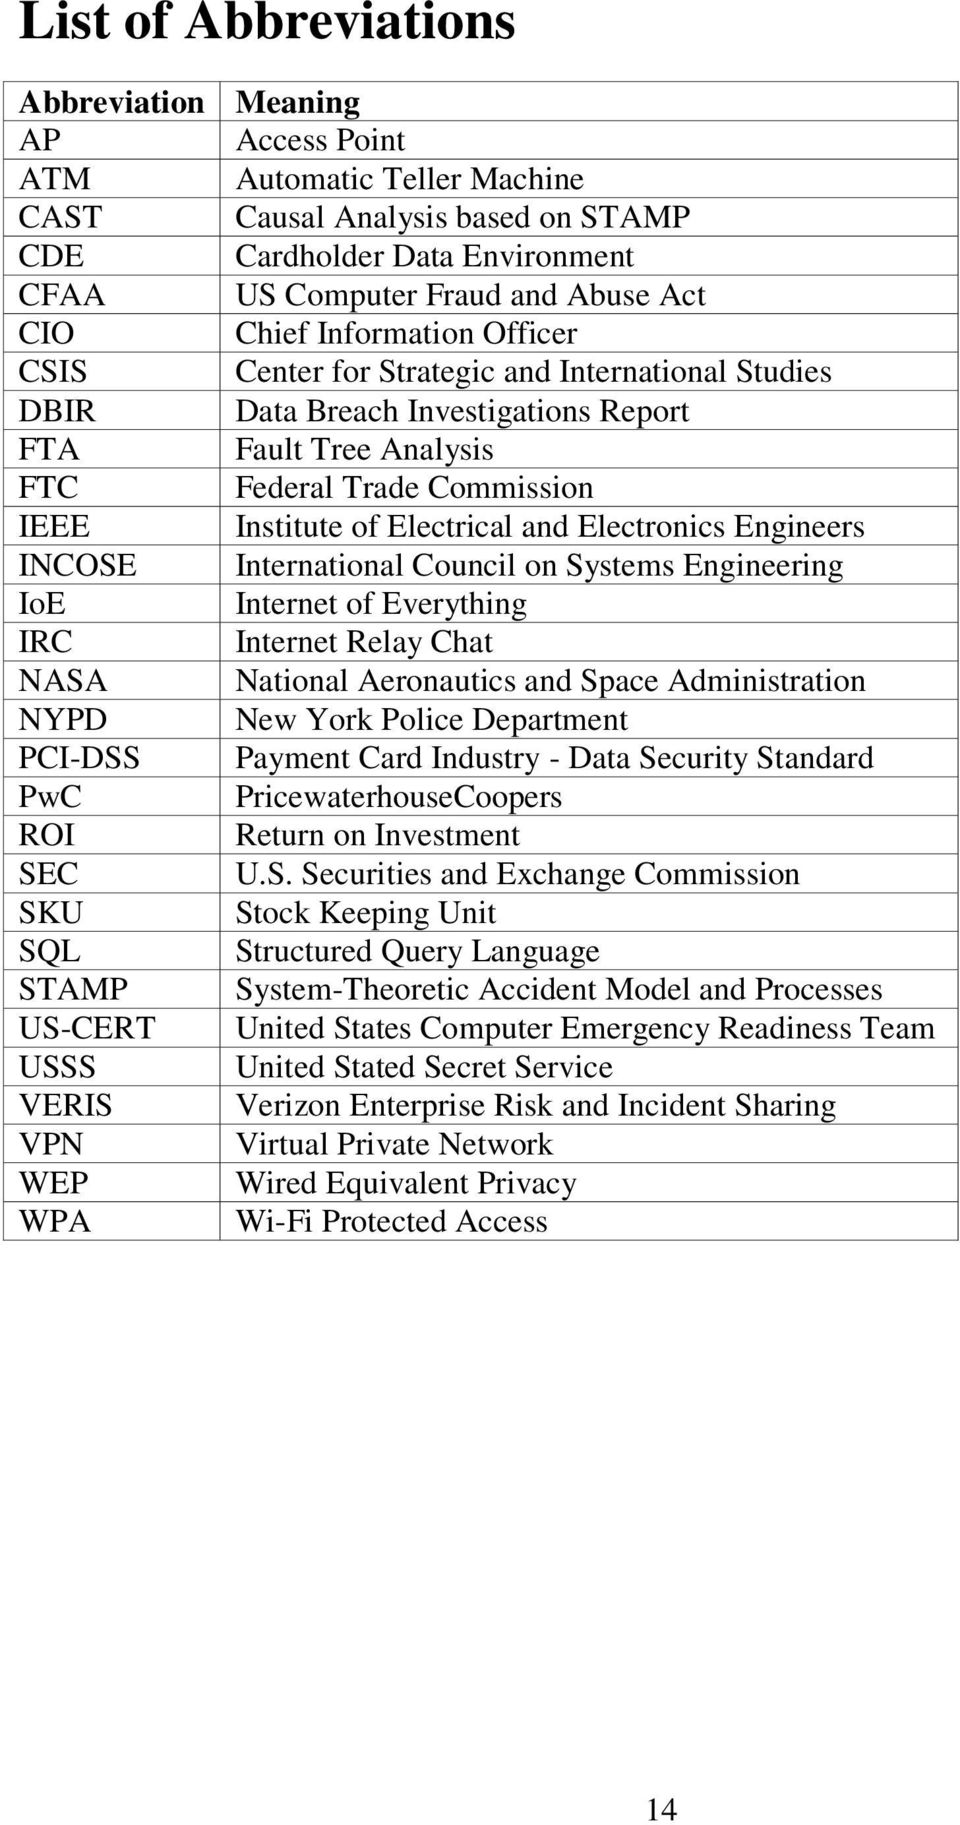 and Electronics Engineers INCOSE International Council on Systems Engineering IoE Internet of Everything IRC Internet Relay Chat NASA National Aeronautics and Space Administration NYPD New York